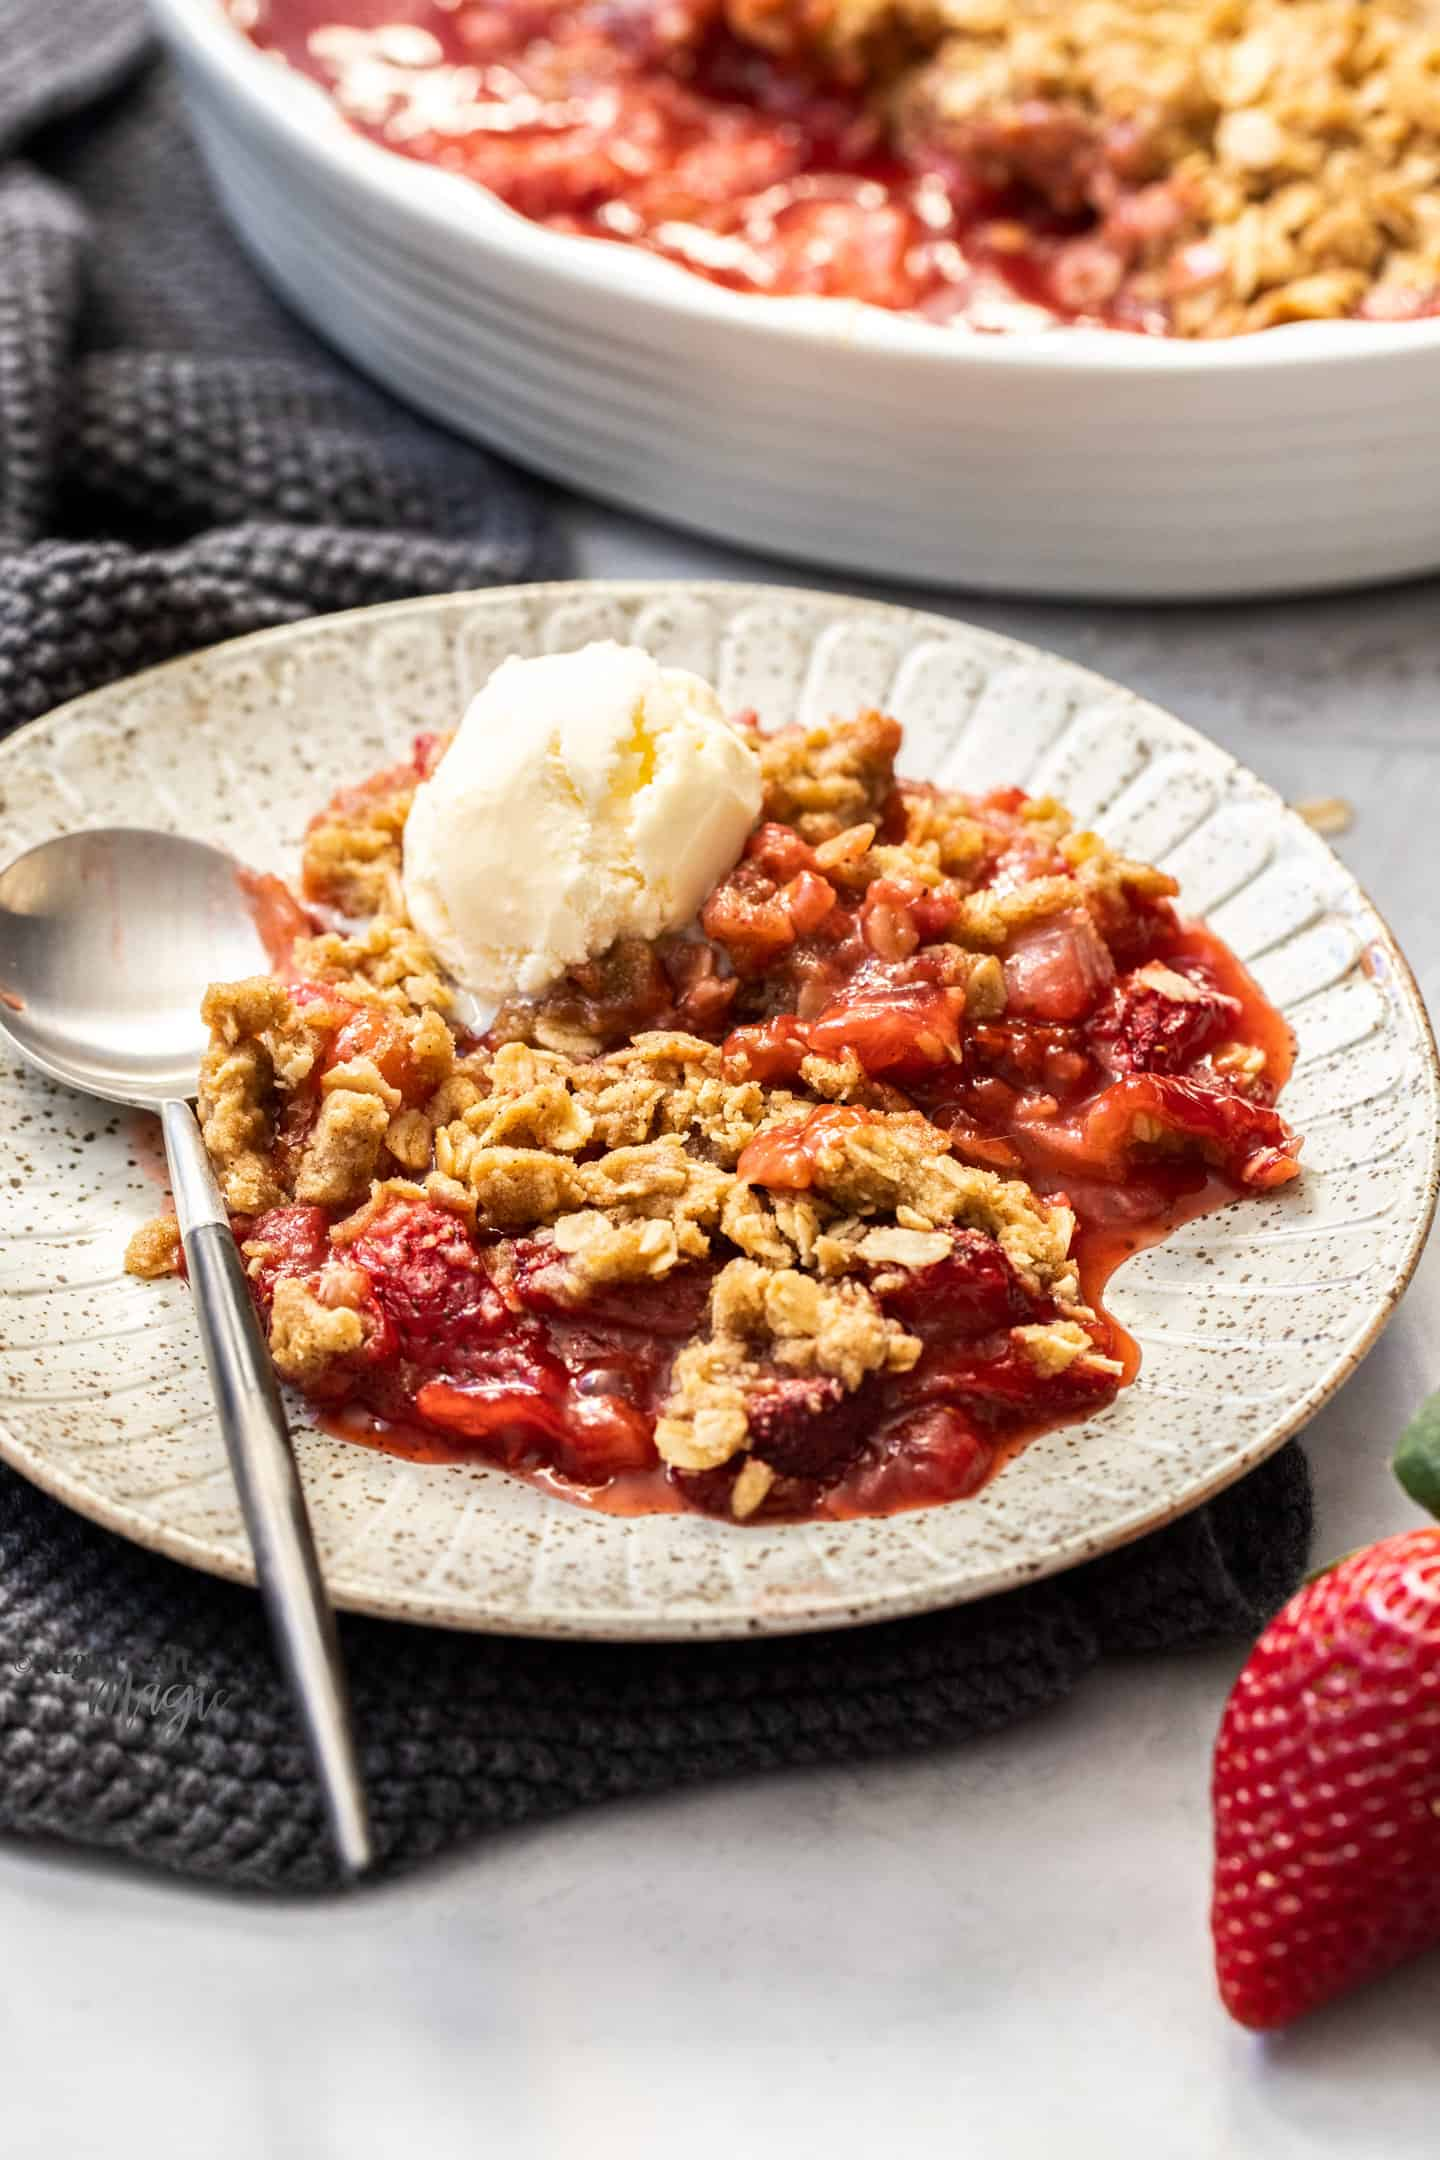 A plate filled with strawberry crisp and ice cream